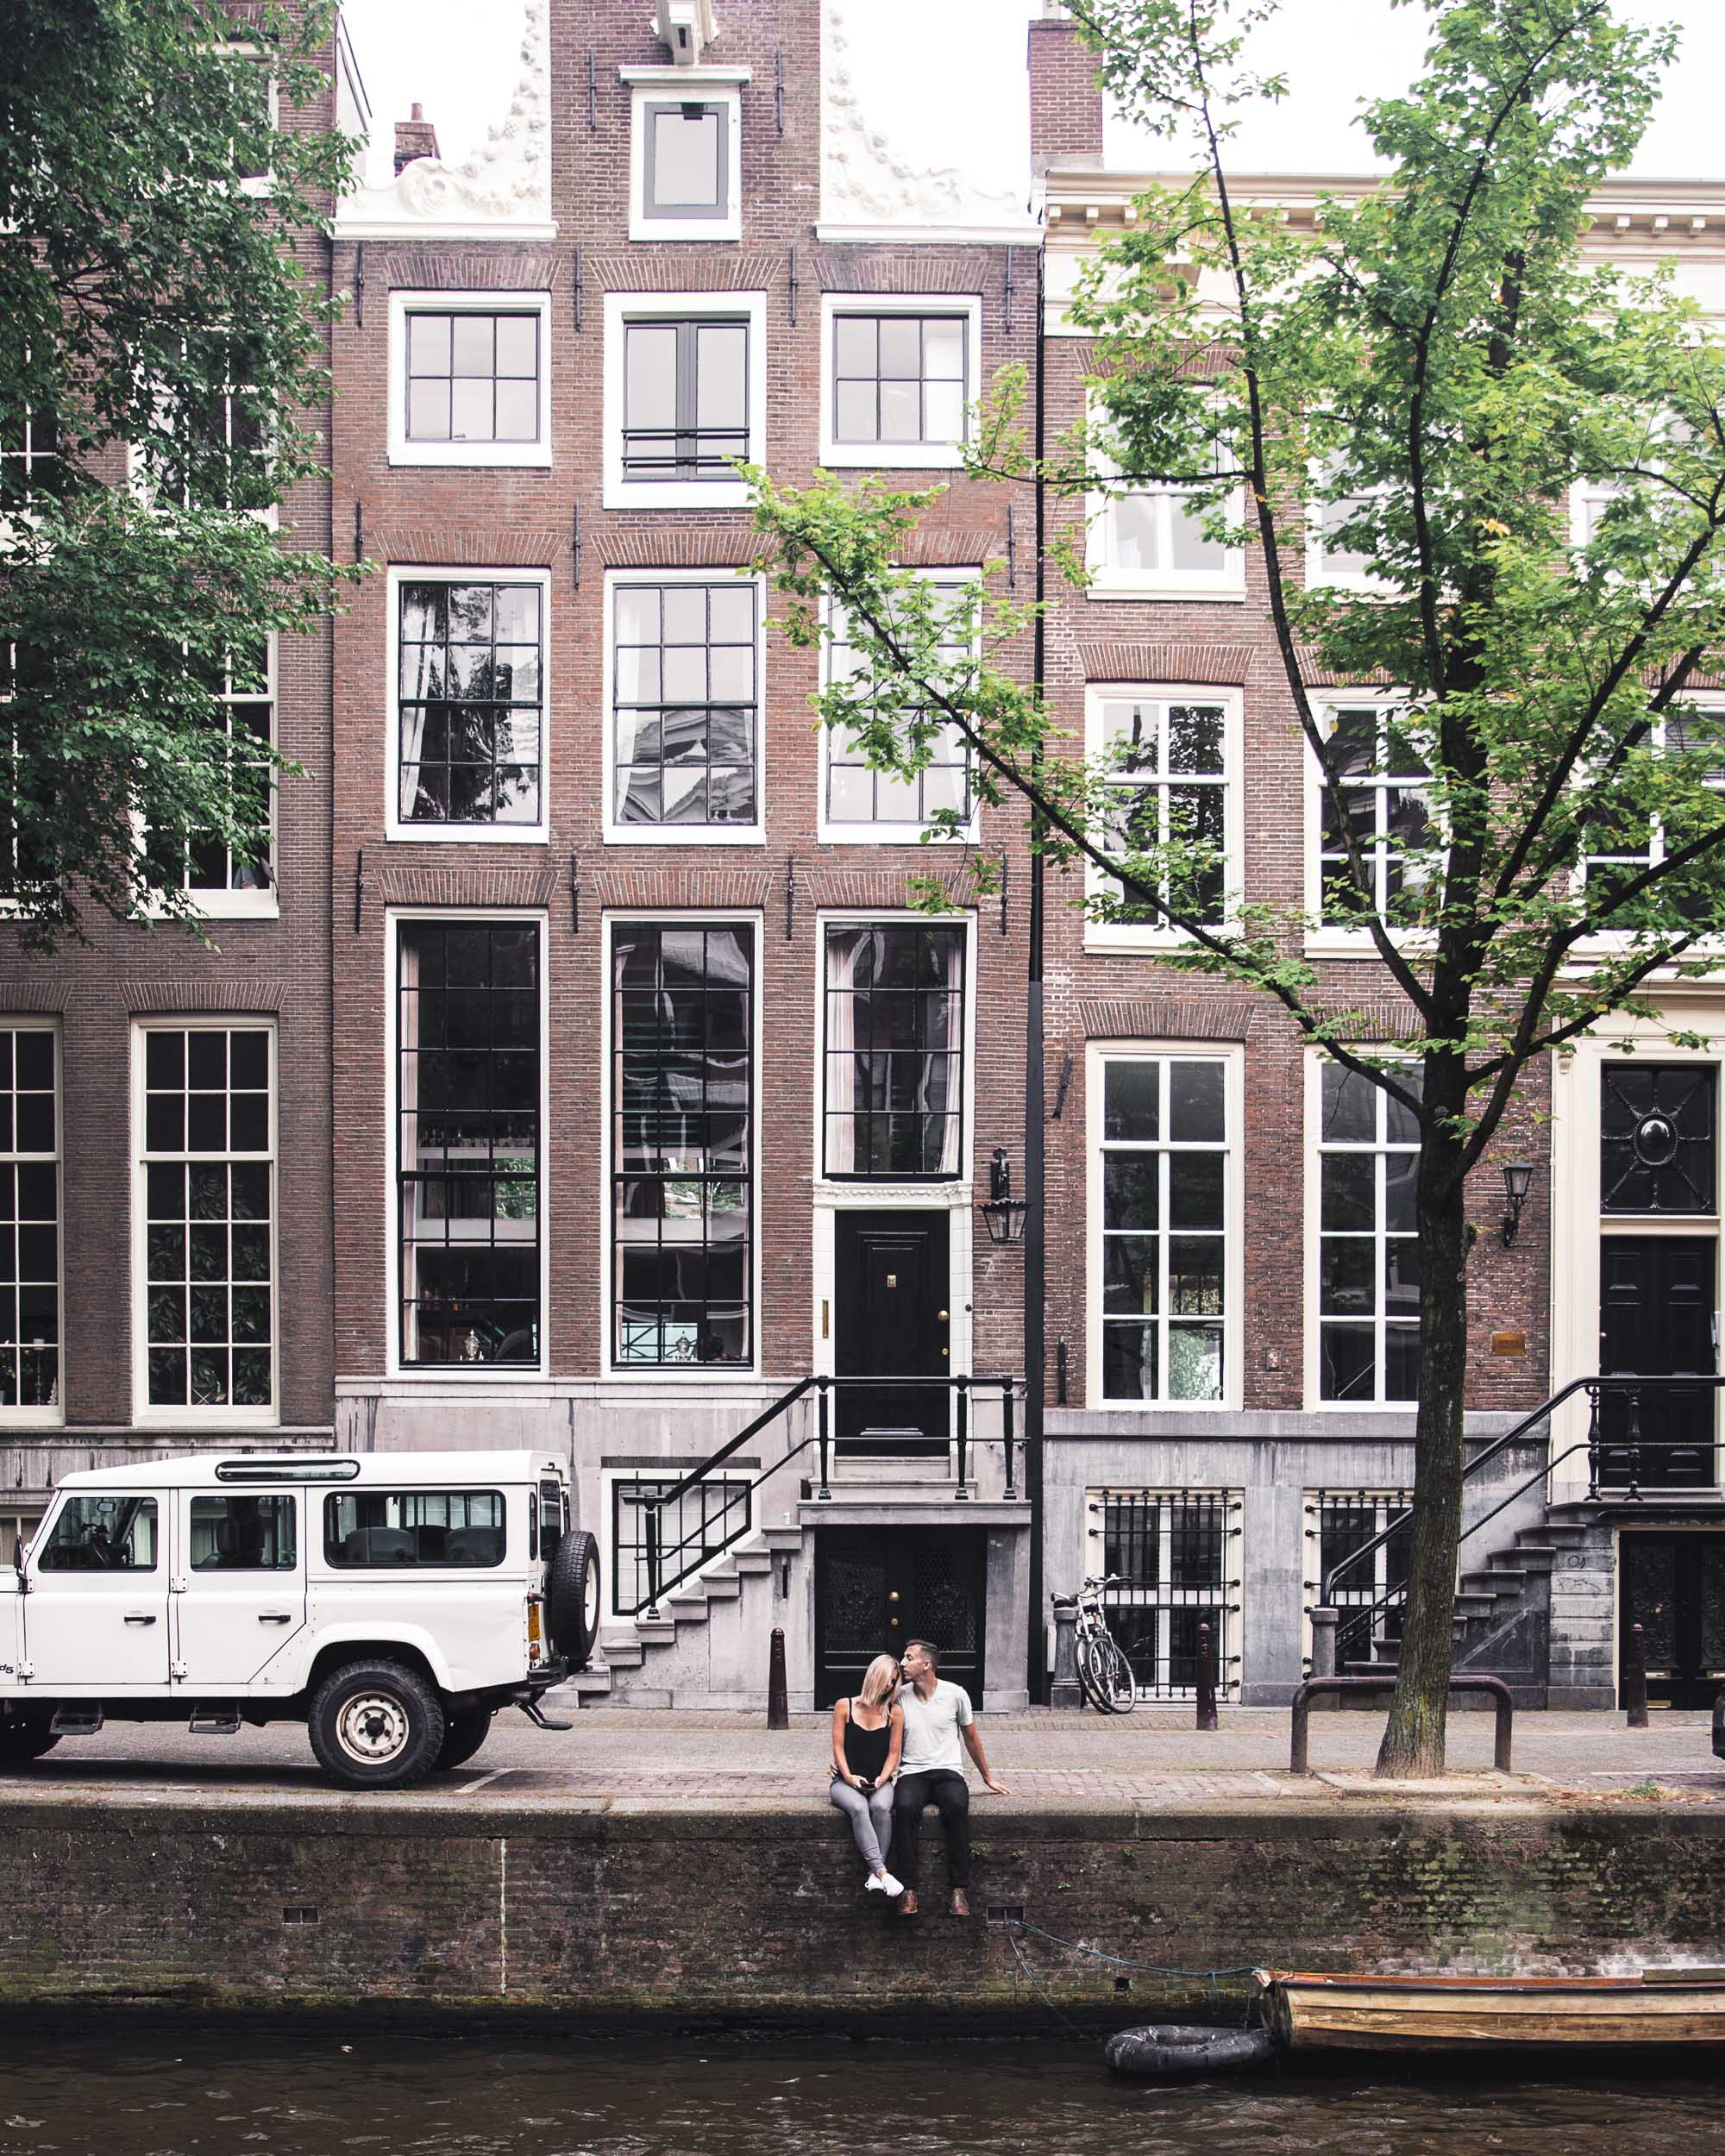 Traditional canal houses in Amsterdam, Holland, The Netherlands